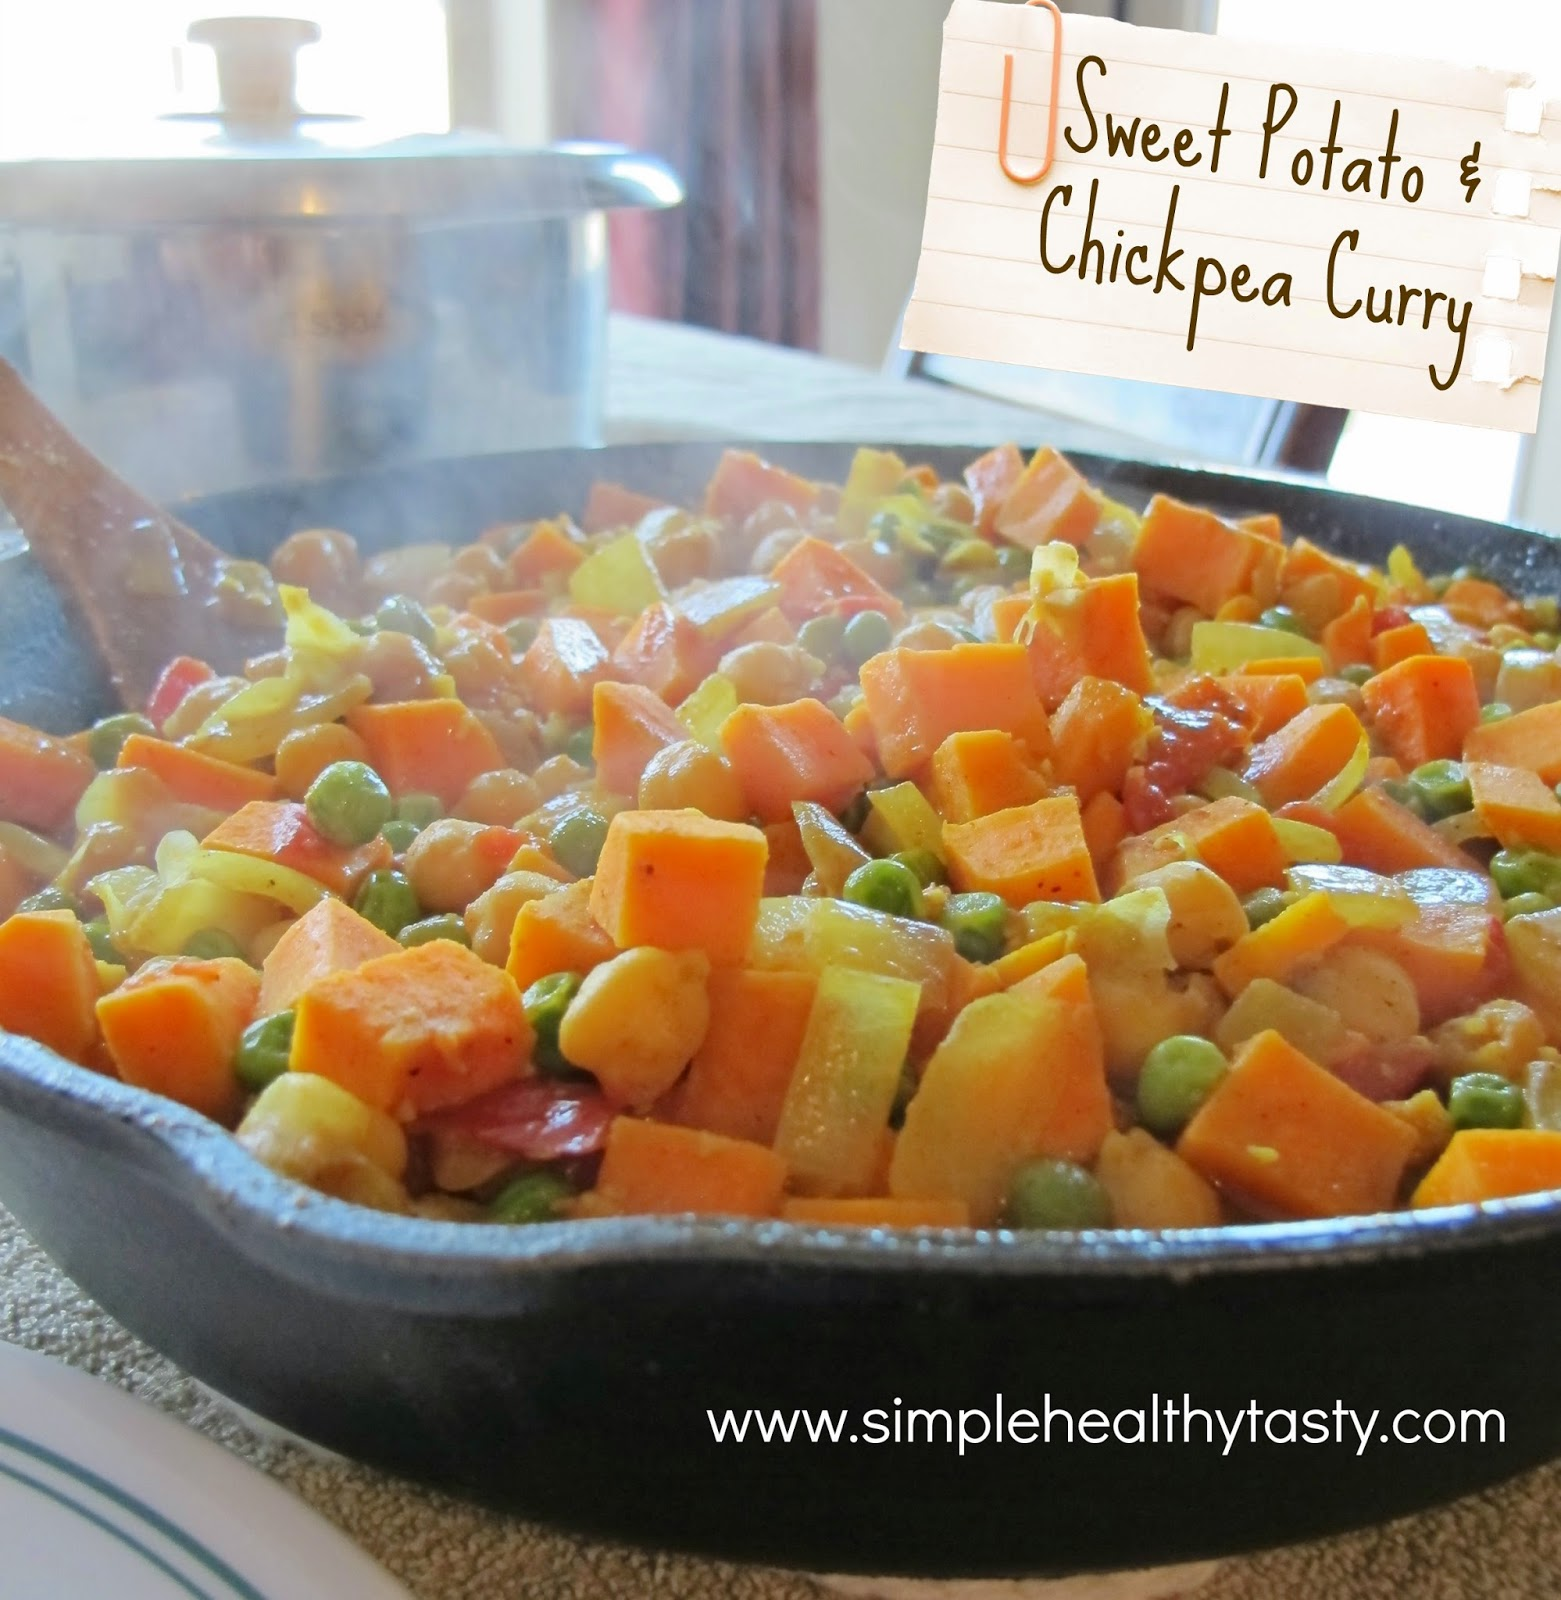 Sweet Potatoes, Chickpeas, Curry Dish